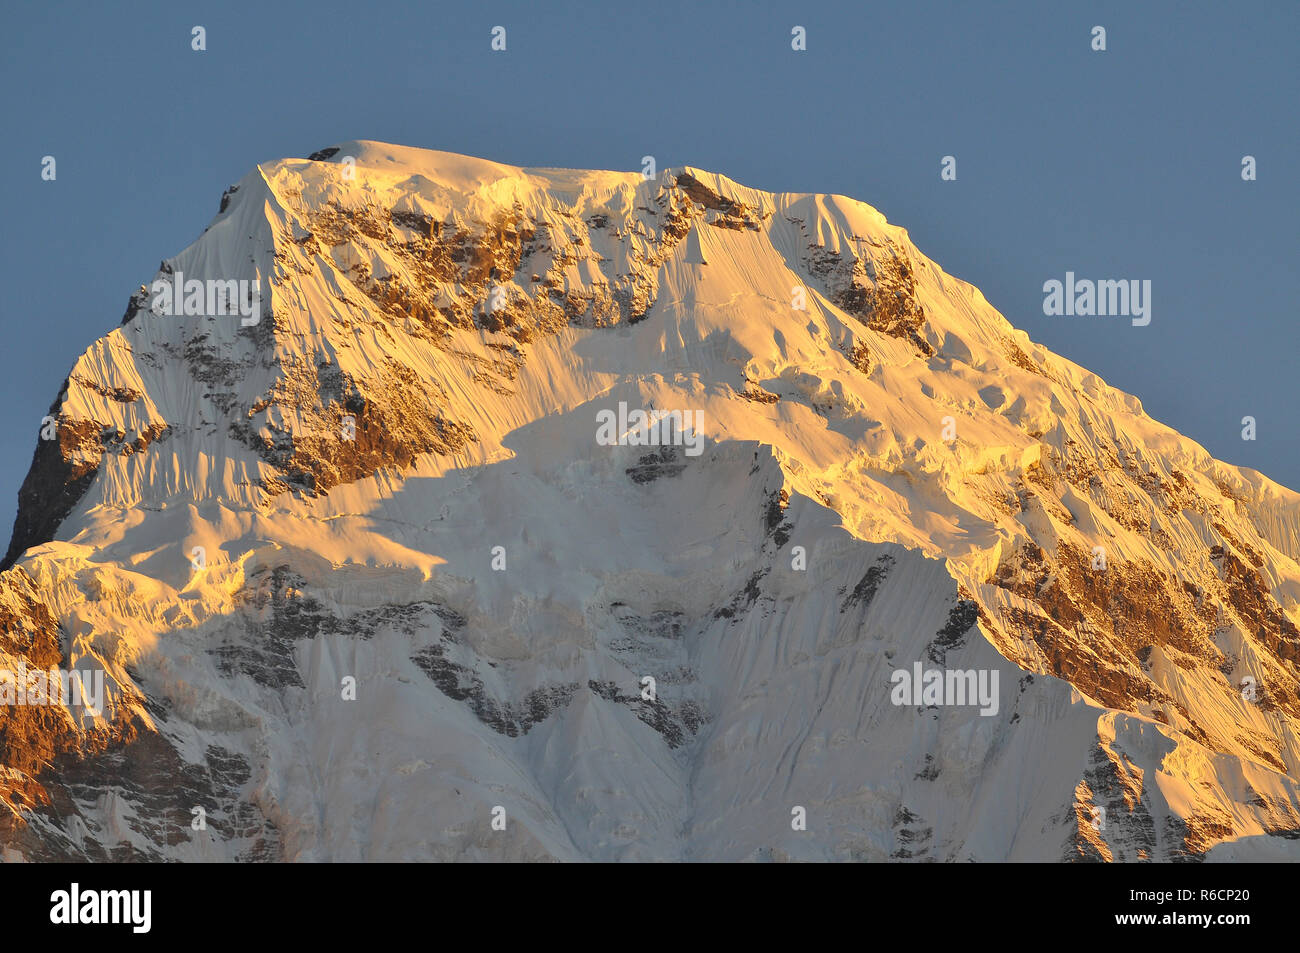 Nepal, Annapurna Conservation Area, Annapurna South View From Tadapani, Nepal Himalaya Stock Photo